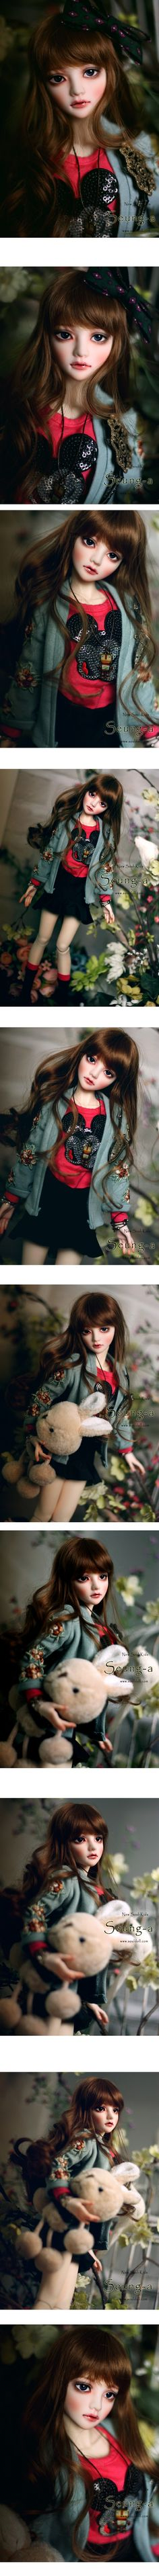 Seung-A 43cm, Soul Doll - BJD Dolls, Accessories - Alice's Collections